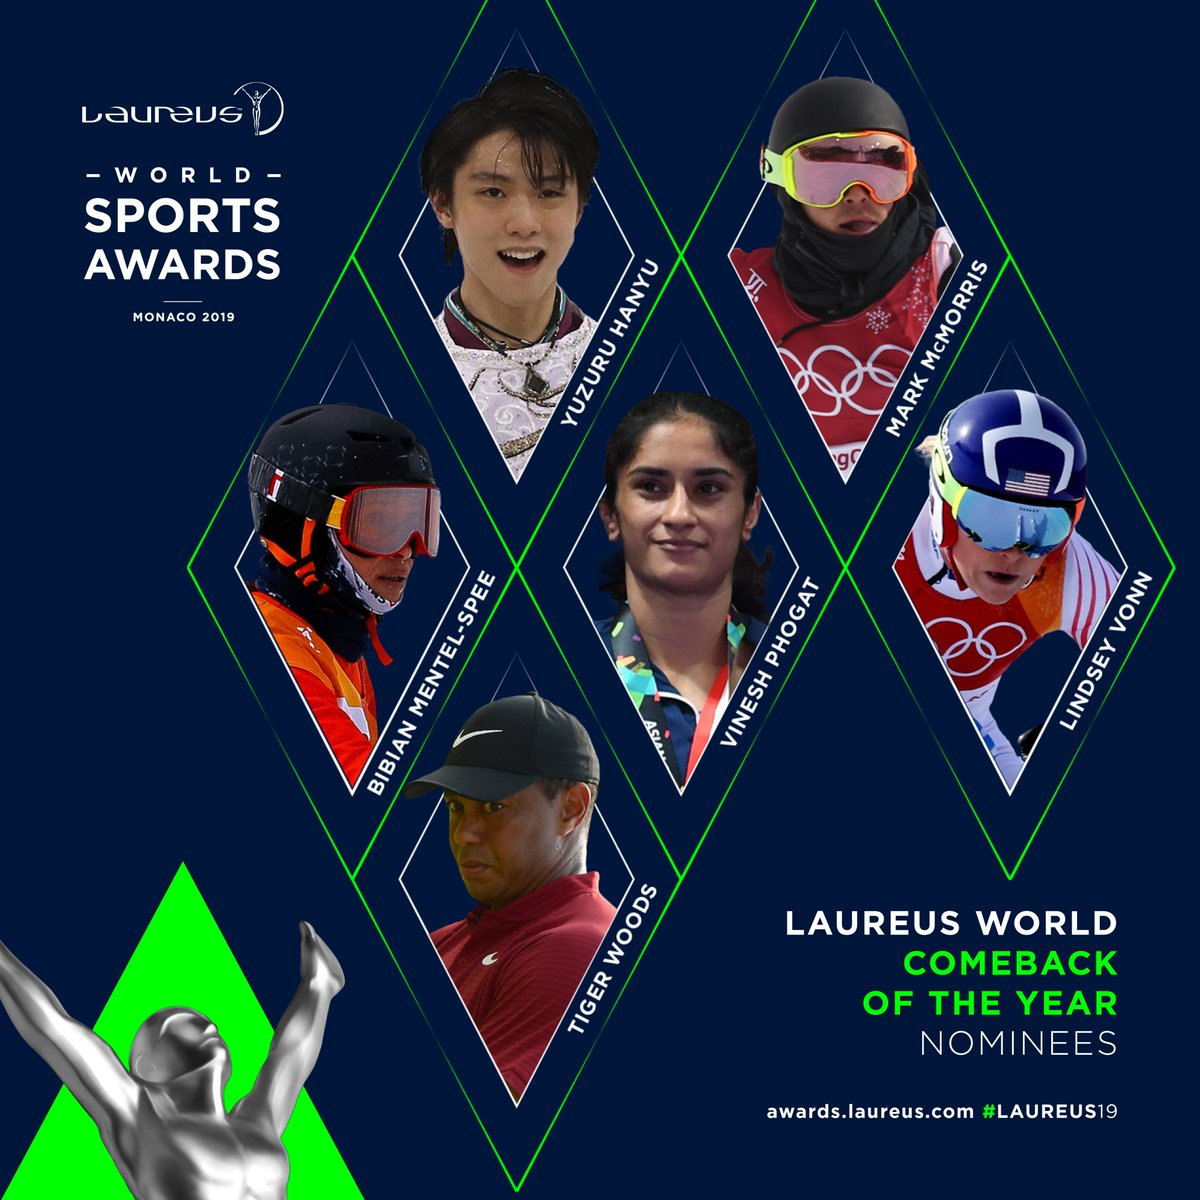 Here are those nominations in full for Laureus World Sporting Comeback of the Year at #Laureus19 https://t.co/ViBSI5kio6